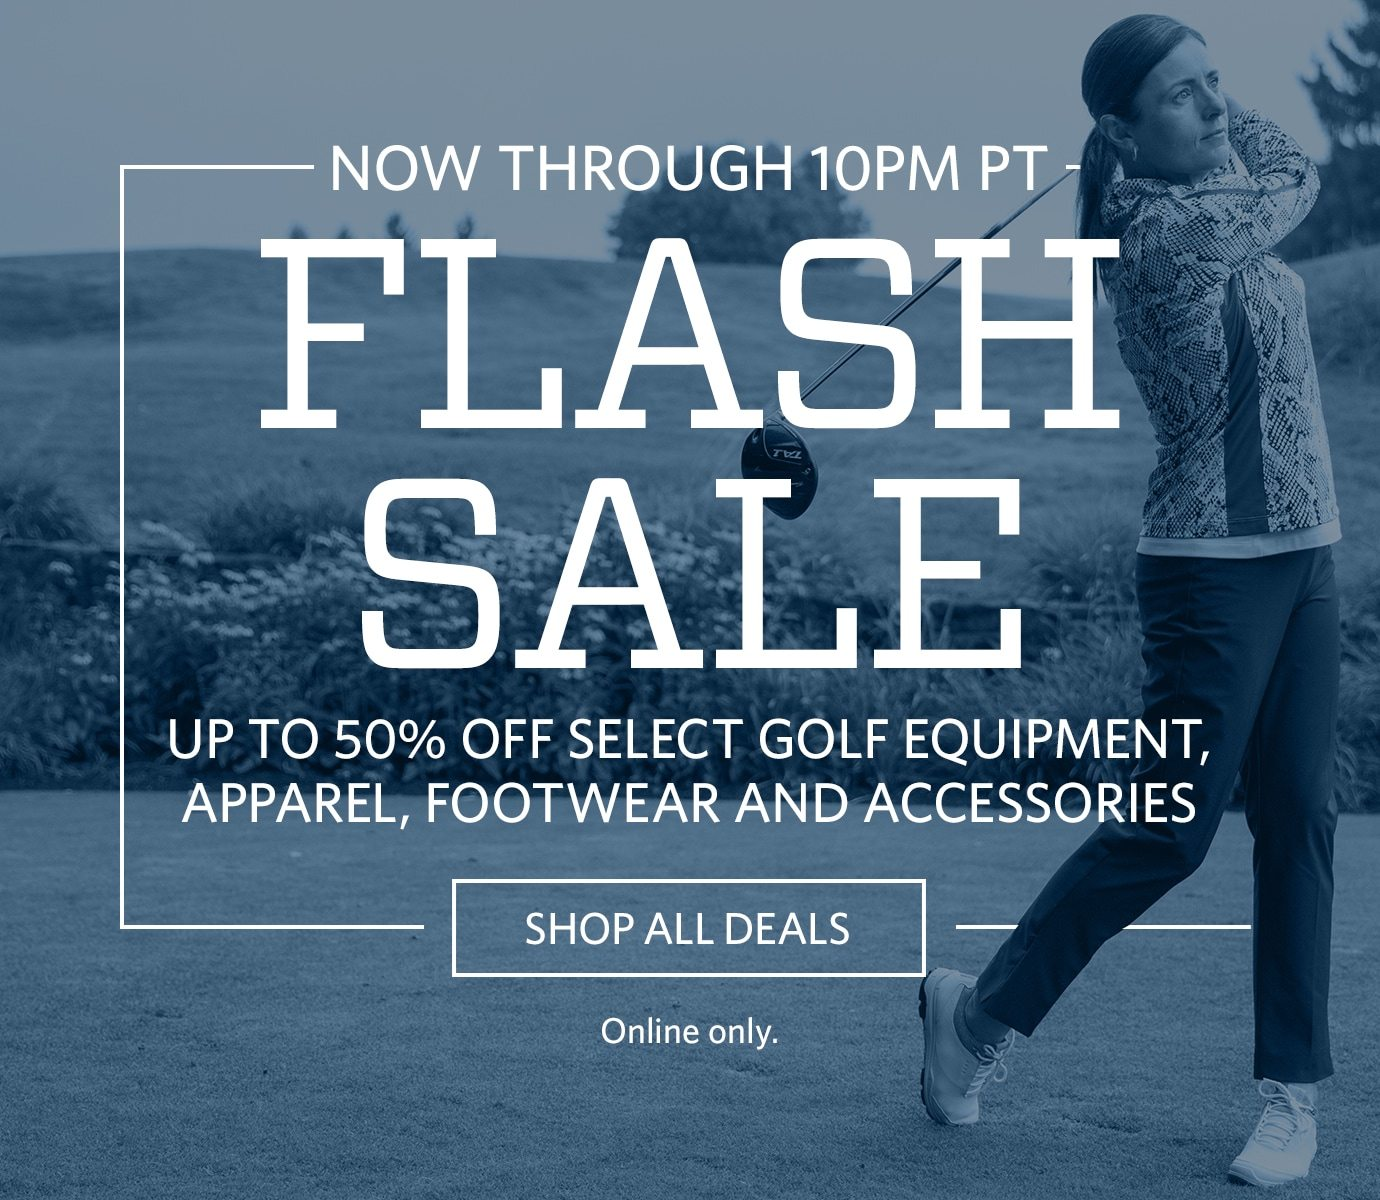 NOW UNTIL 10PM PT | FLASH SALE | UP TO 50% OFF SELECT GOLF EQUIPMENT, APPAREL, FOOTWEAR AND ACCESSORIES | SHOP ALL DEALS | ONLINE ONLY.